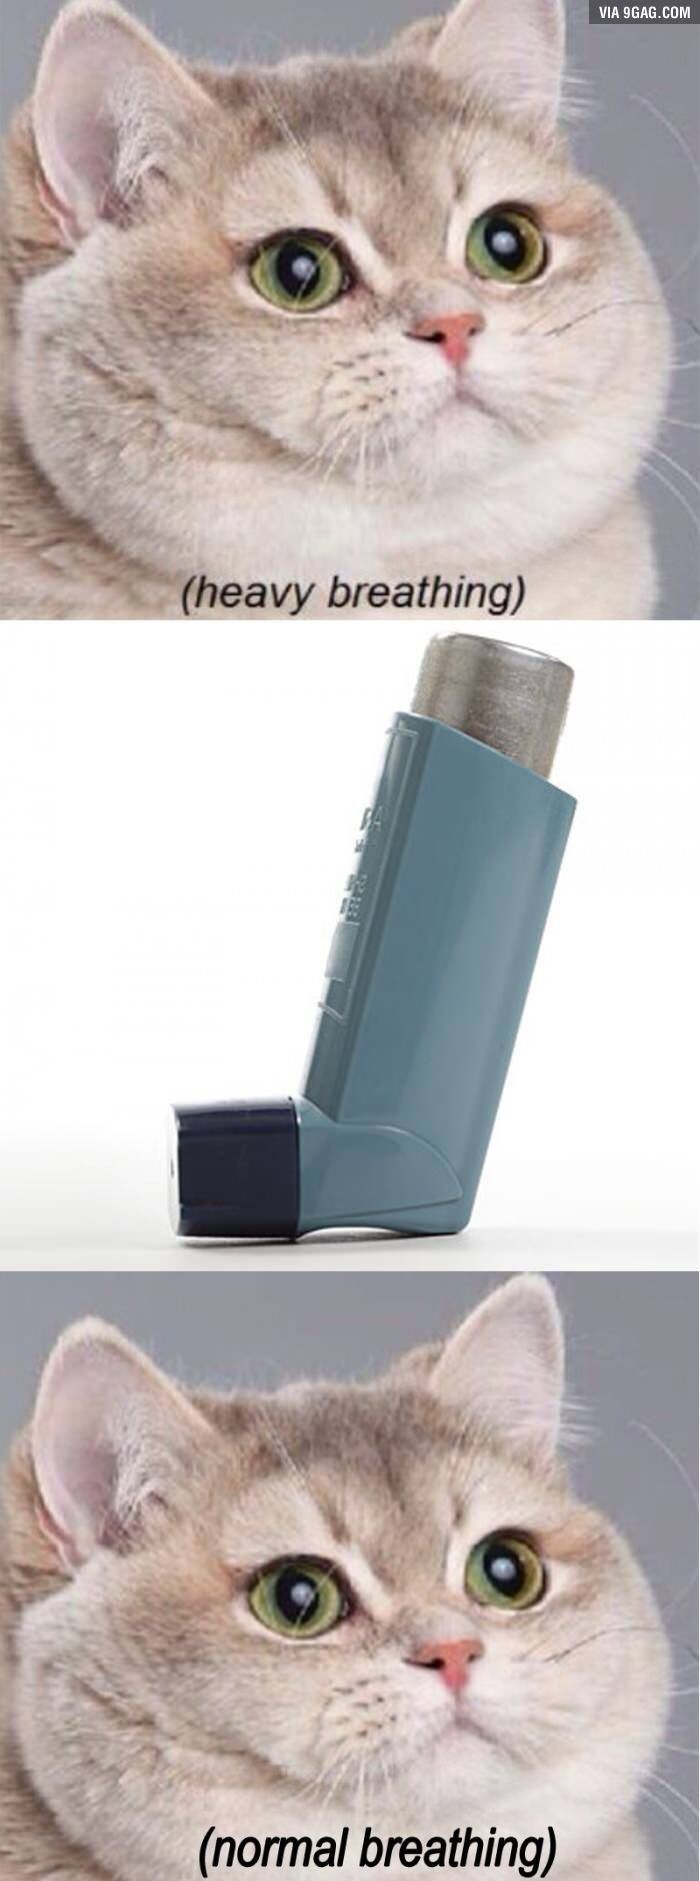 Heavy breathing cat. Asthmatics can relate.